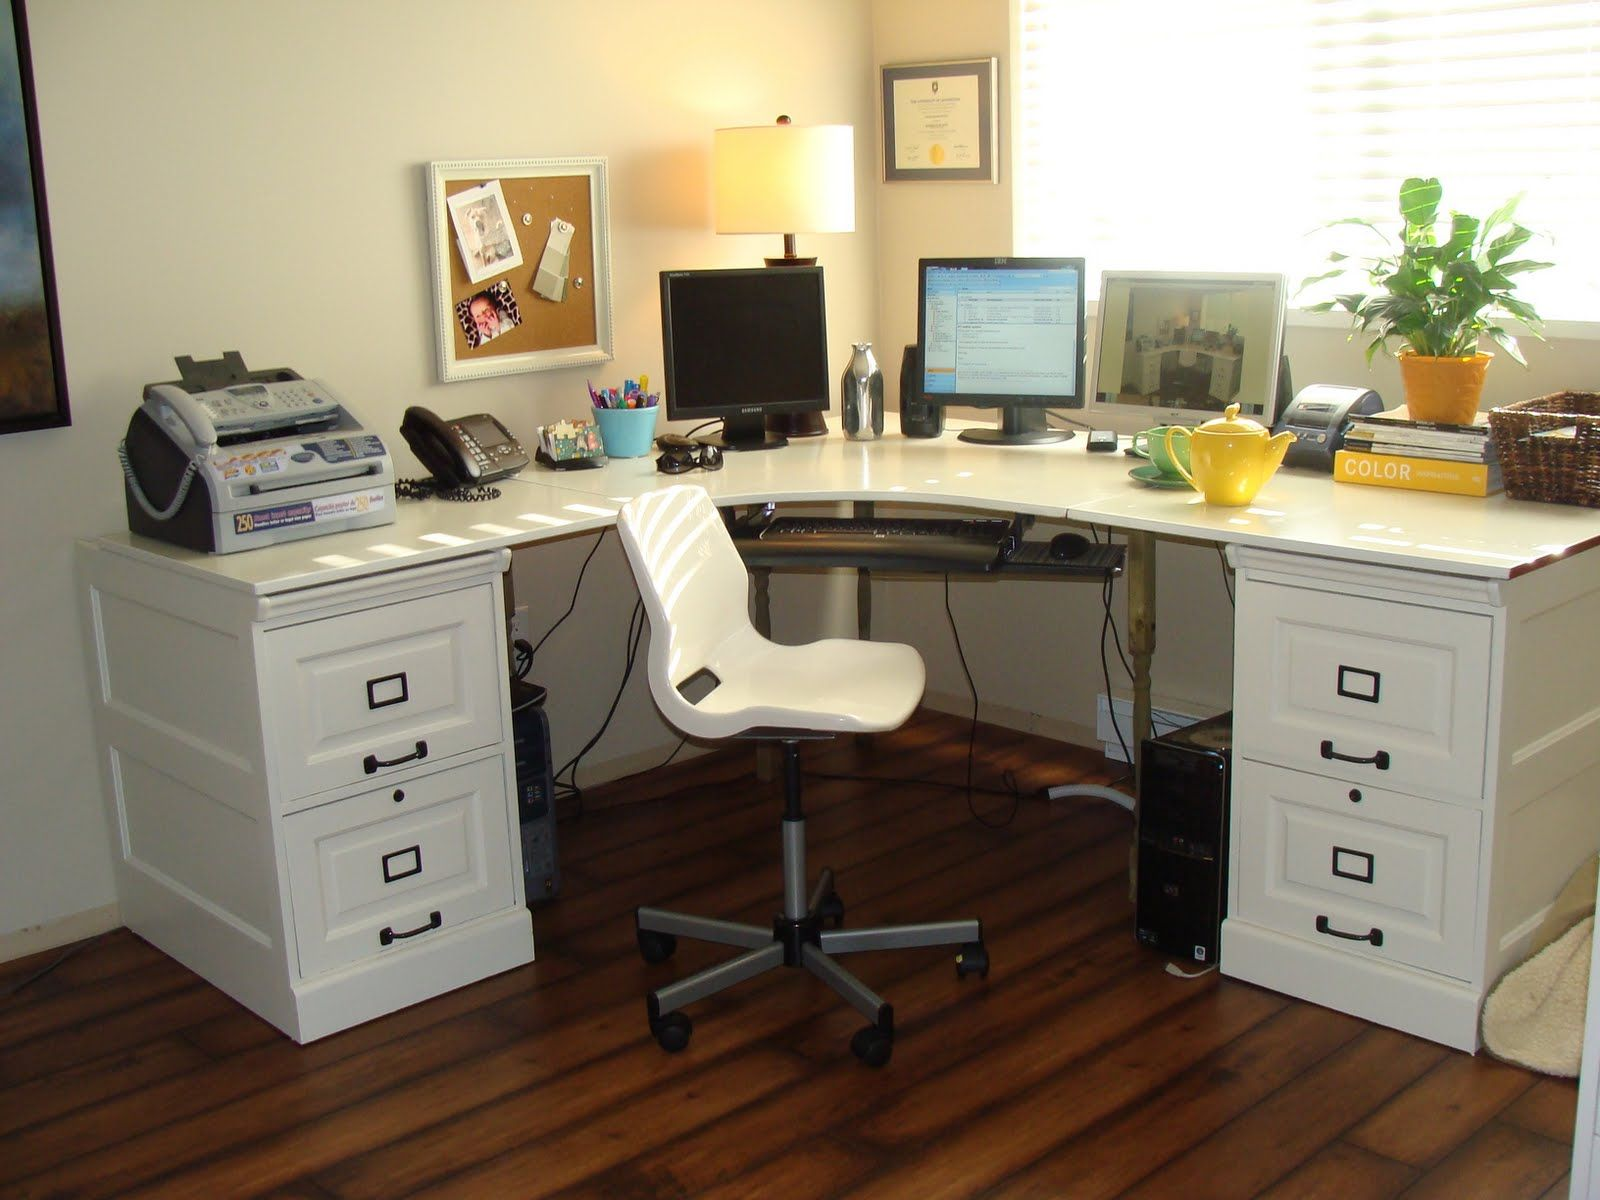 corner office cabinet. Pottery Barn Inspired Desk Transformation - IKEA Hackers Corner Office Cabinet S